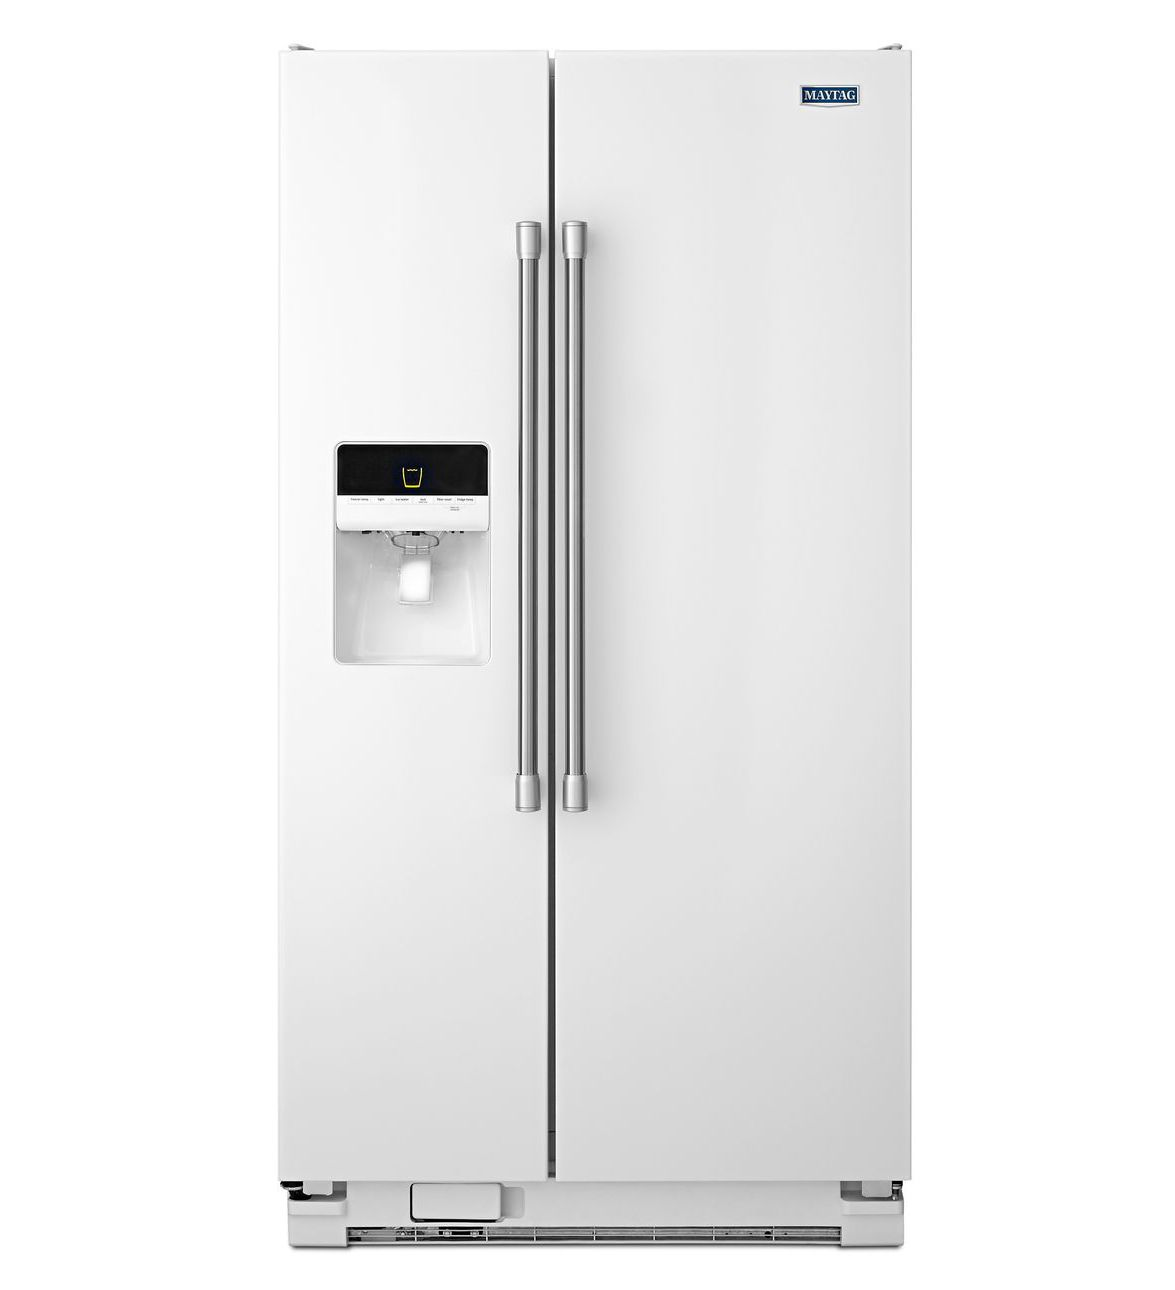 Maytag french door refrigerator reviews - The Maytag Fridge Review